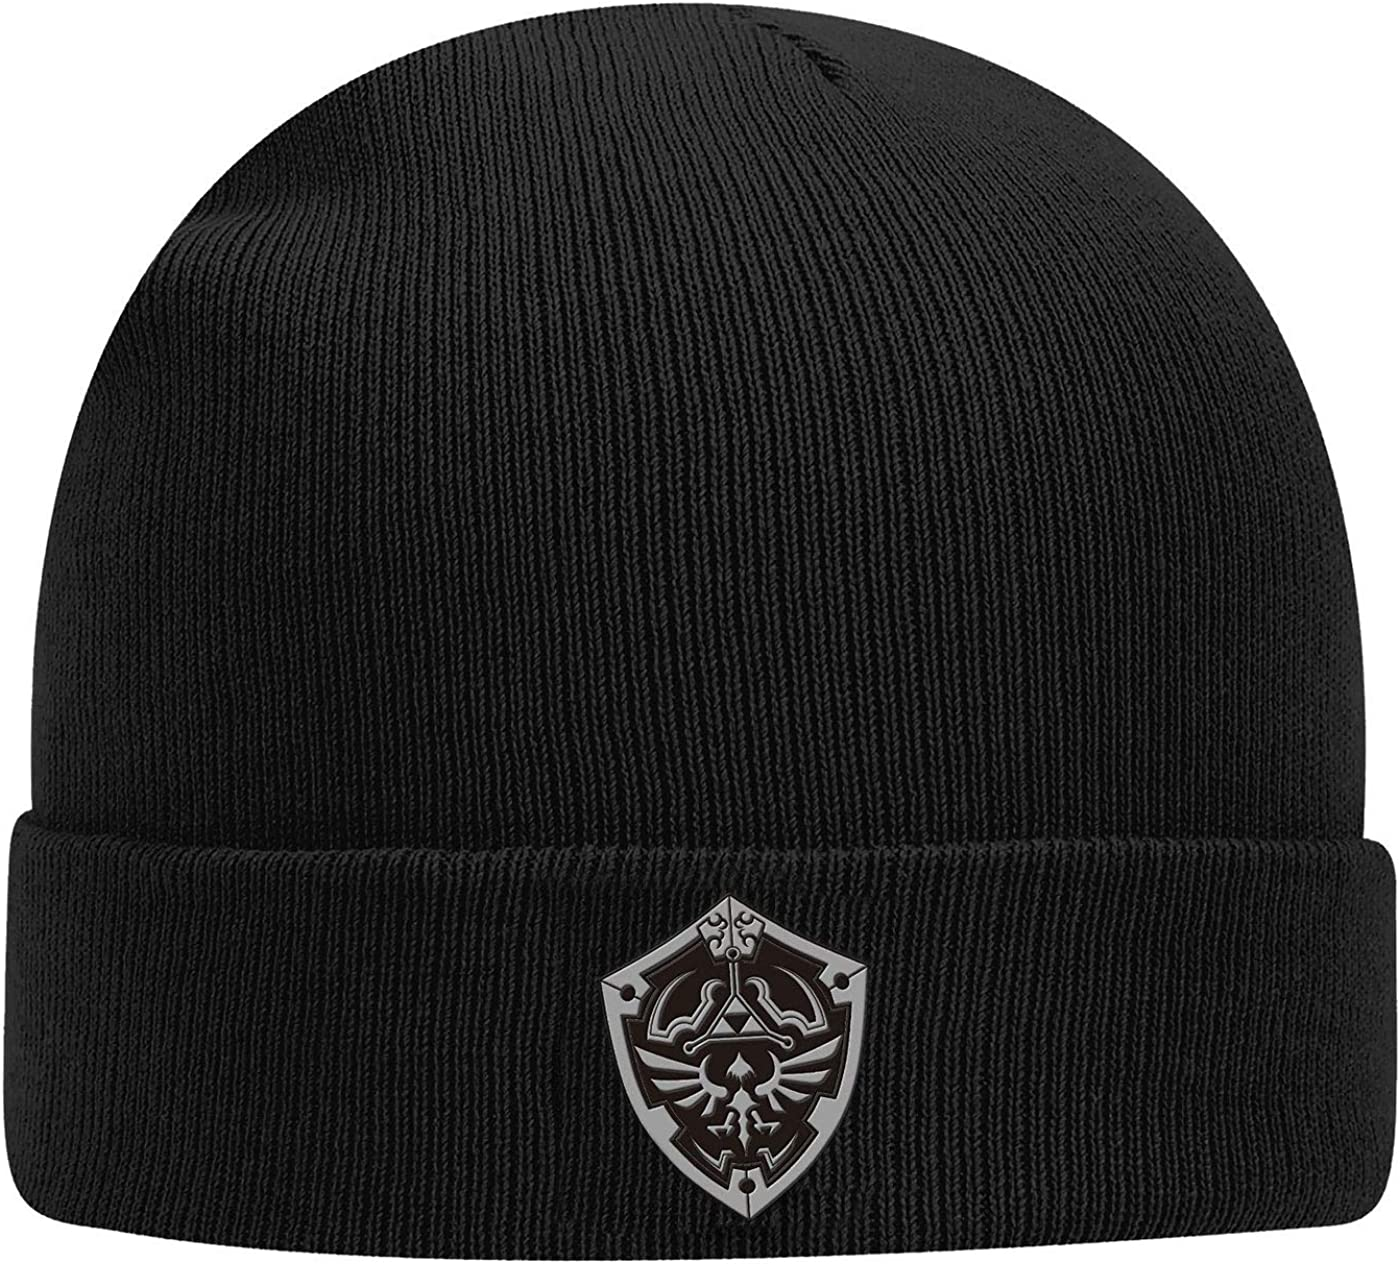 Controller Gear Zelda Breath of The Wild Silver Shield Knit Hat Beanie Black One Size